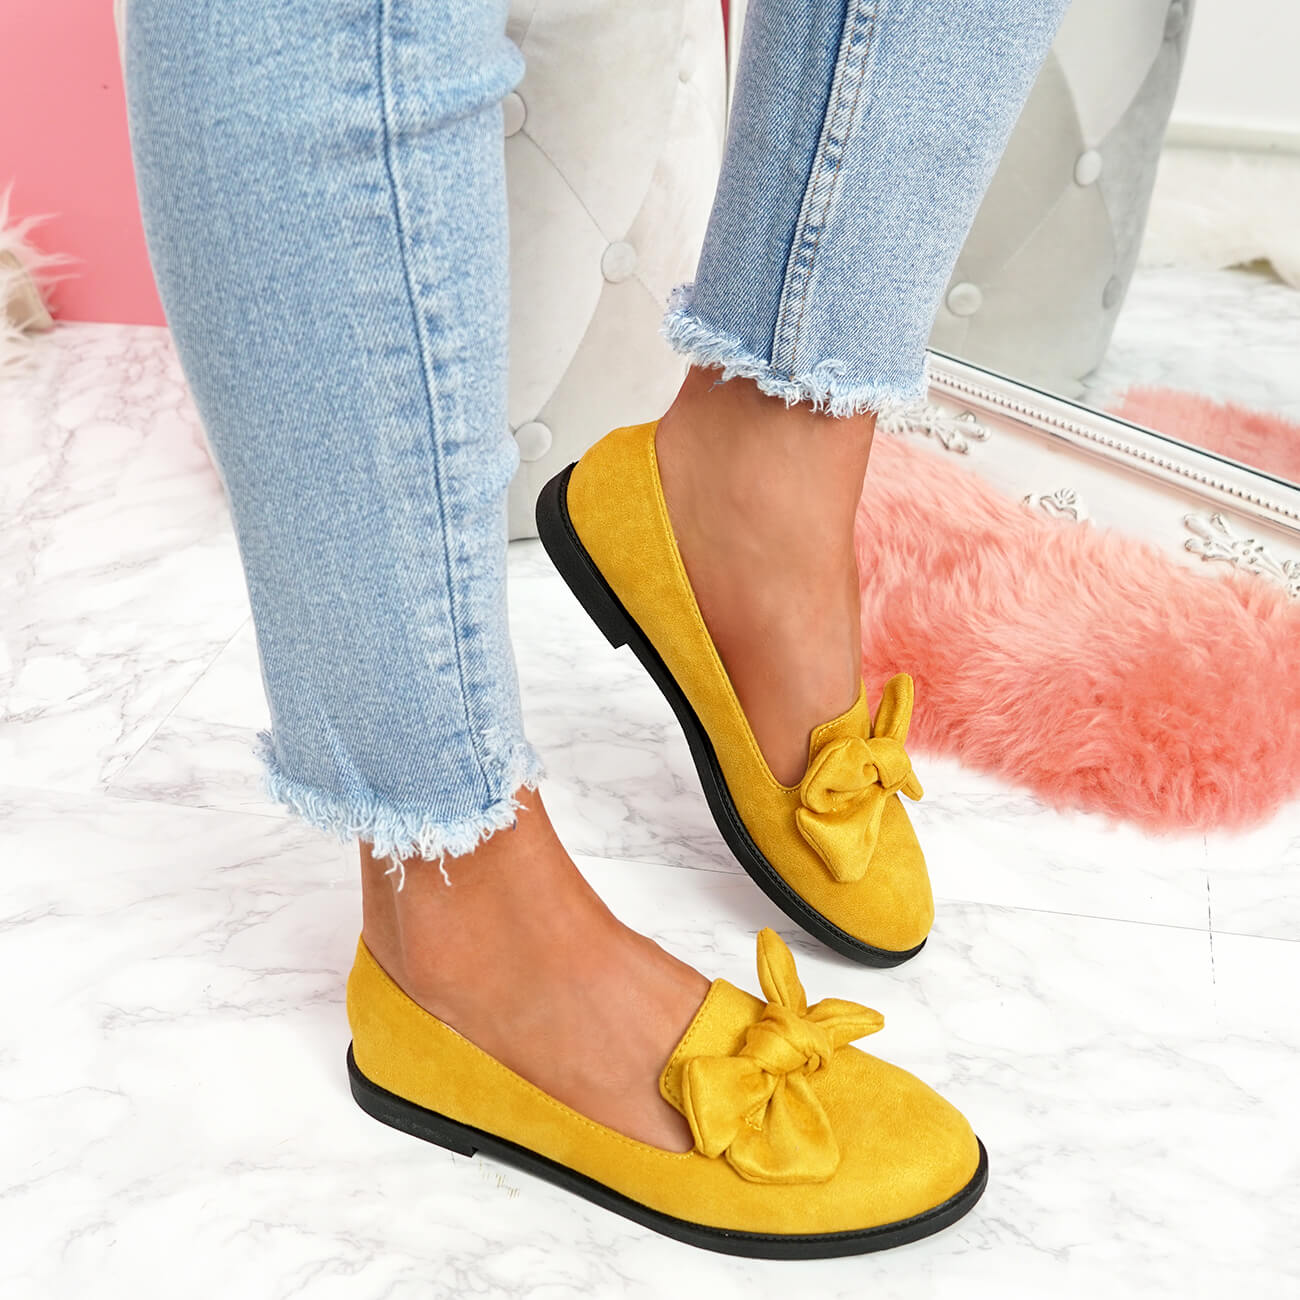 WOMENS-LADIES-BOW-BALLERINA-PUMPS-FLATS-SLIP-ON-BALLET-CASUAL-WORK-SHOES-SIZE thumbnail 39